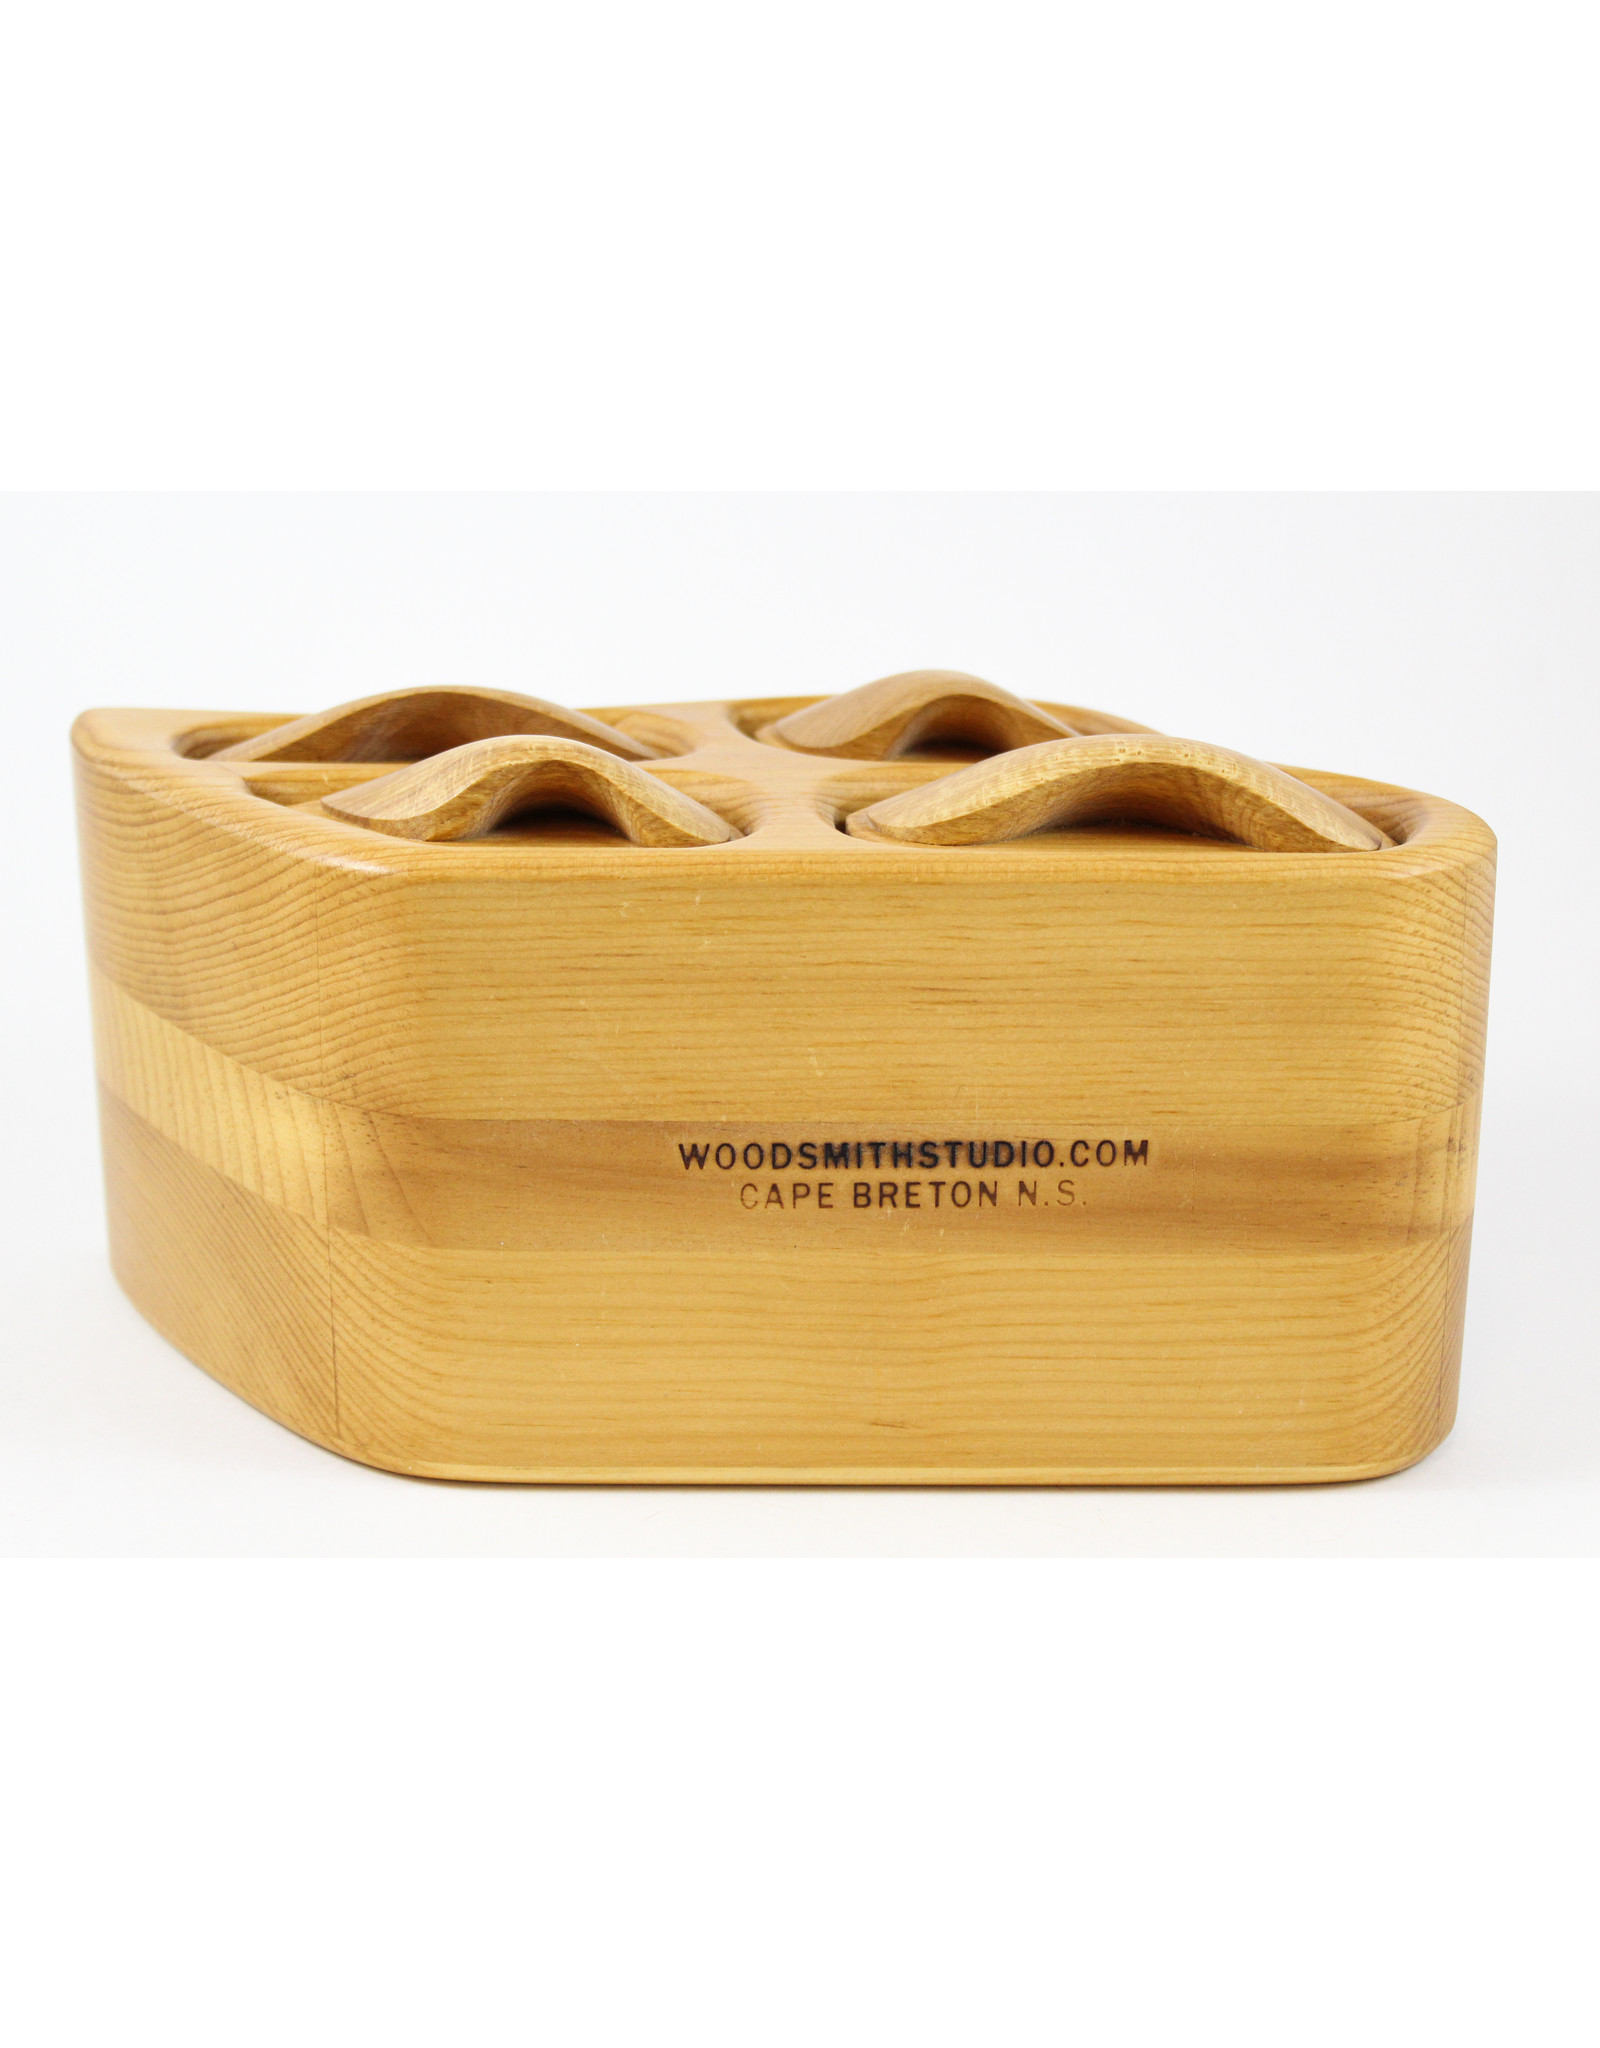 Robert Evans Large Four Drawer Band Box by Woodsmiths